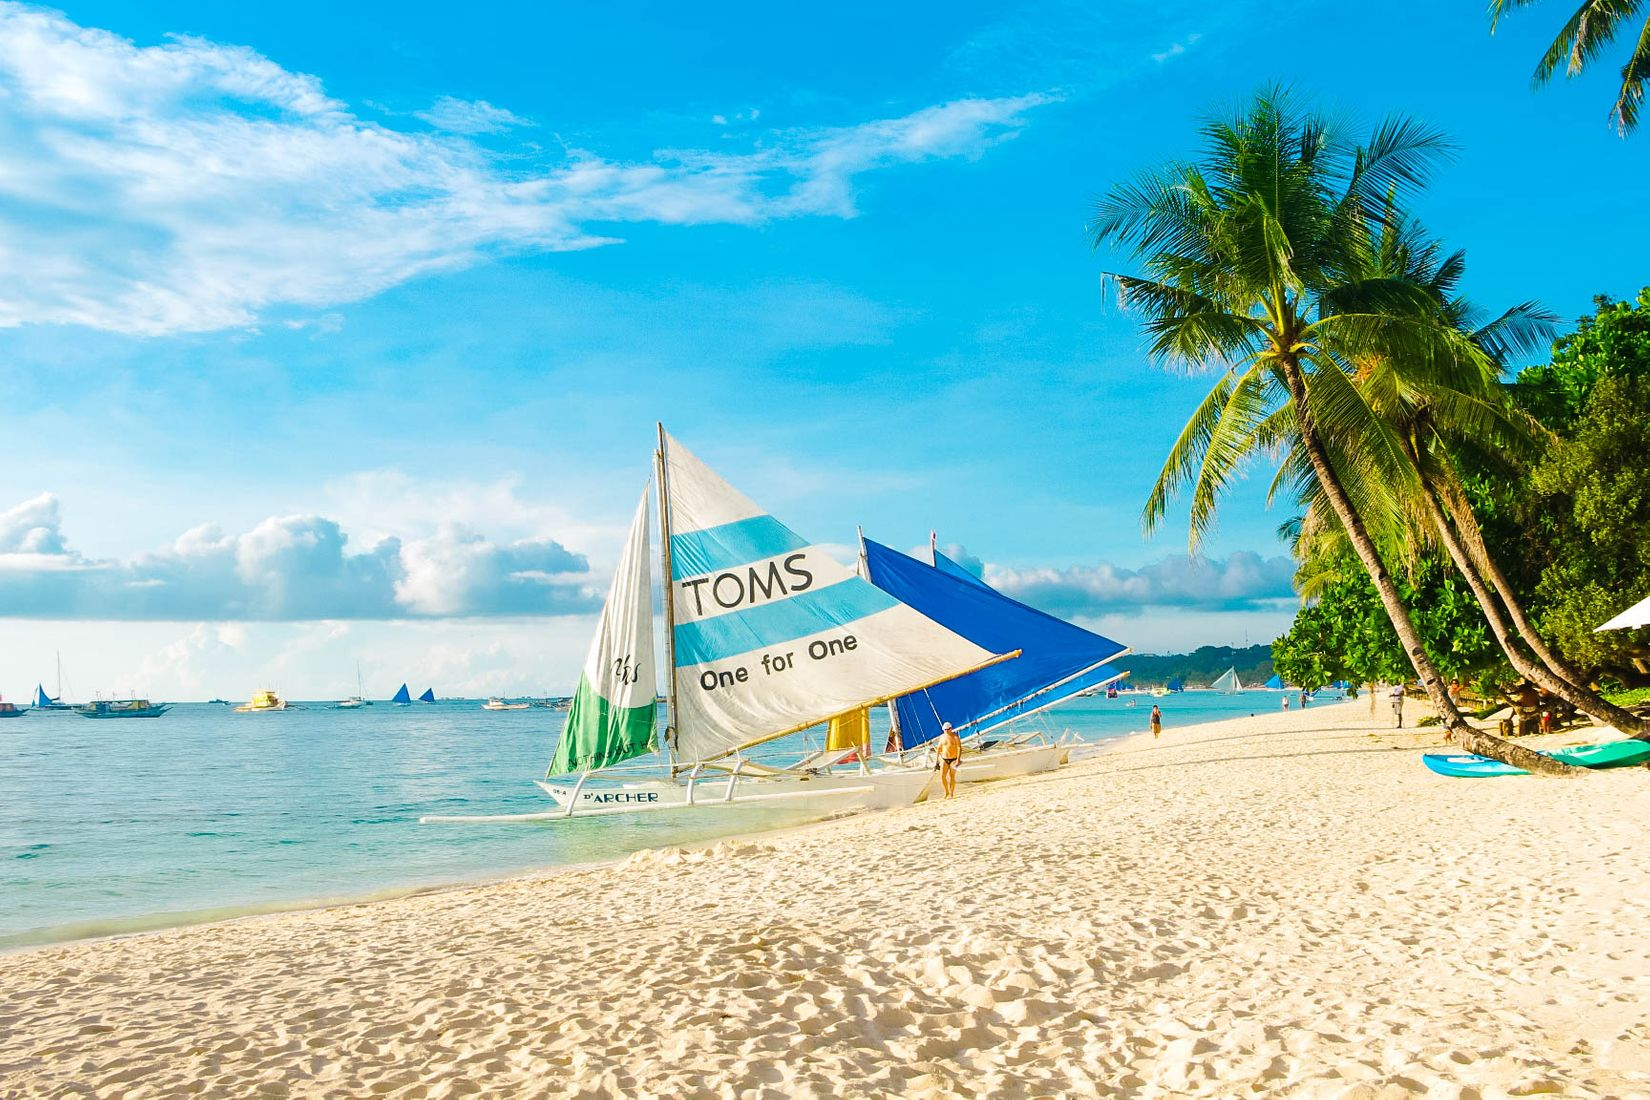 Coconut palms and moored sailboats on a white sandy beach in Boracay Island, one of the most beautiful beach destinations in the Philippines